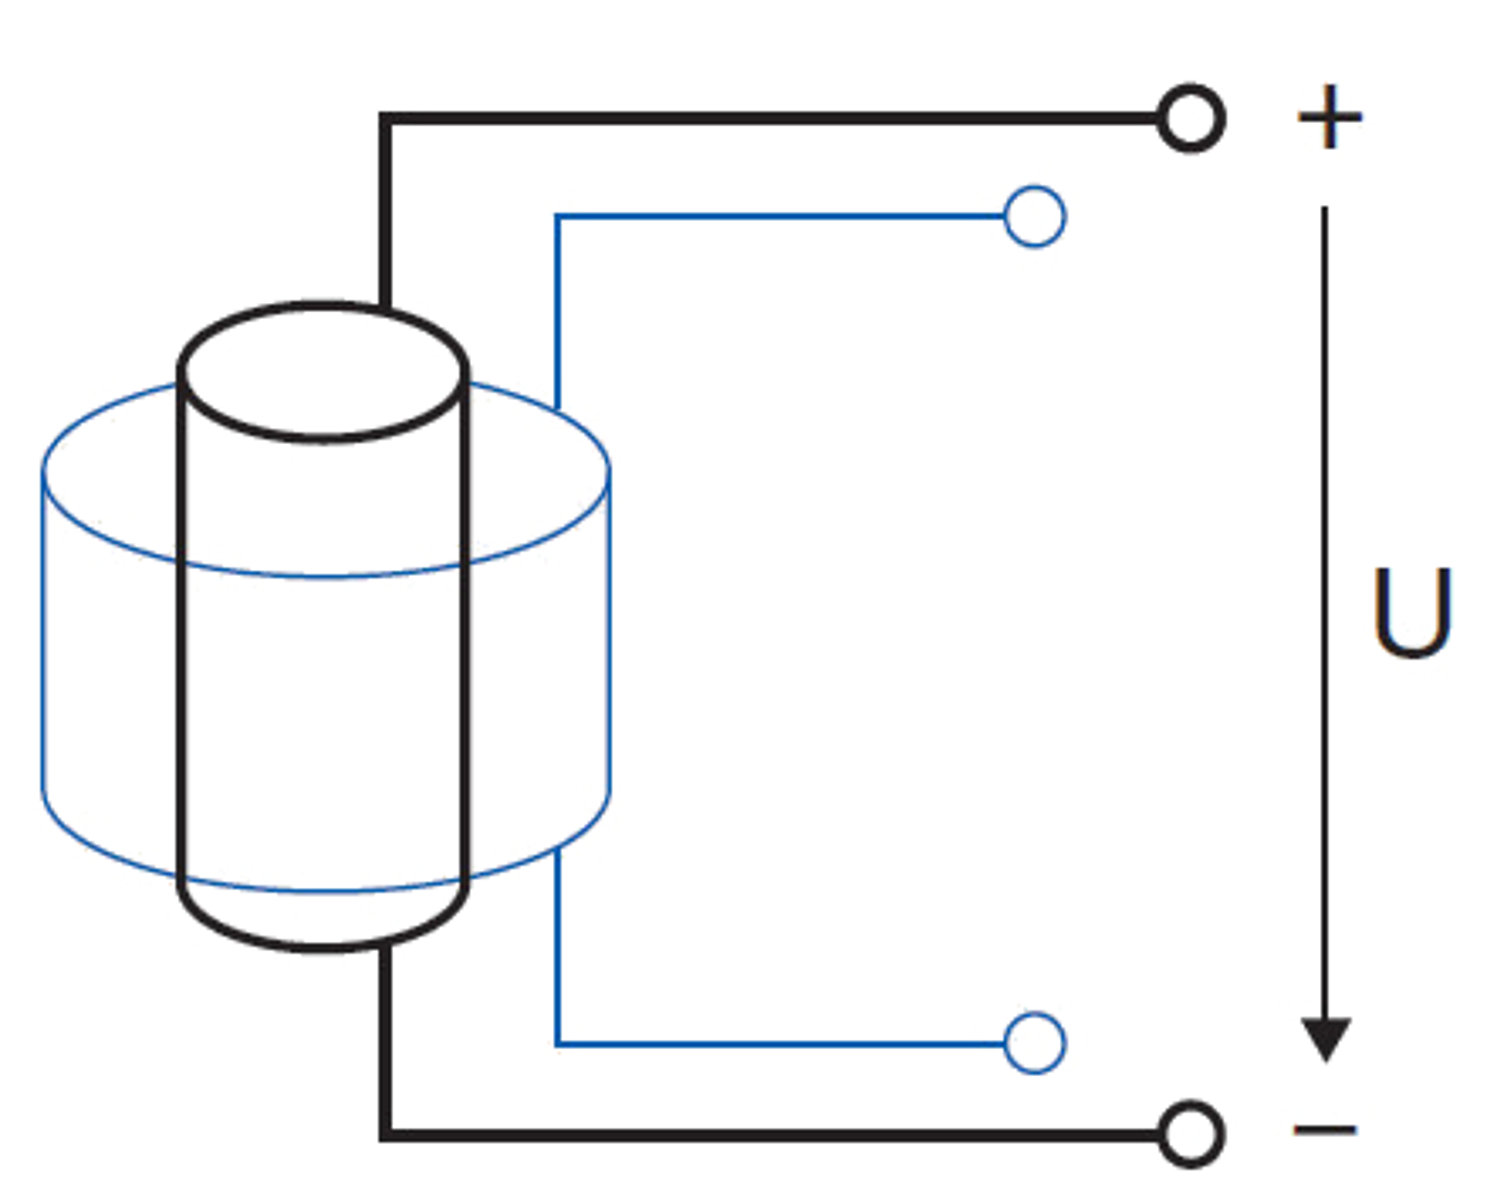 Fundamentals Of Piezo Technology Circuit Electric Buzzer Explained Homemade Projects Displacement Ferroelectric Ceramics At Different Control Amplitudes